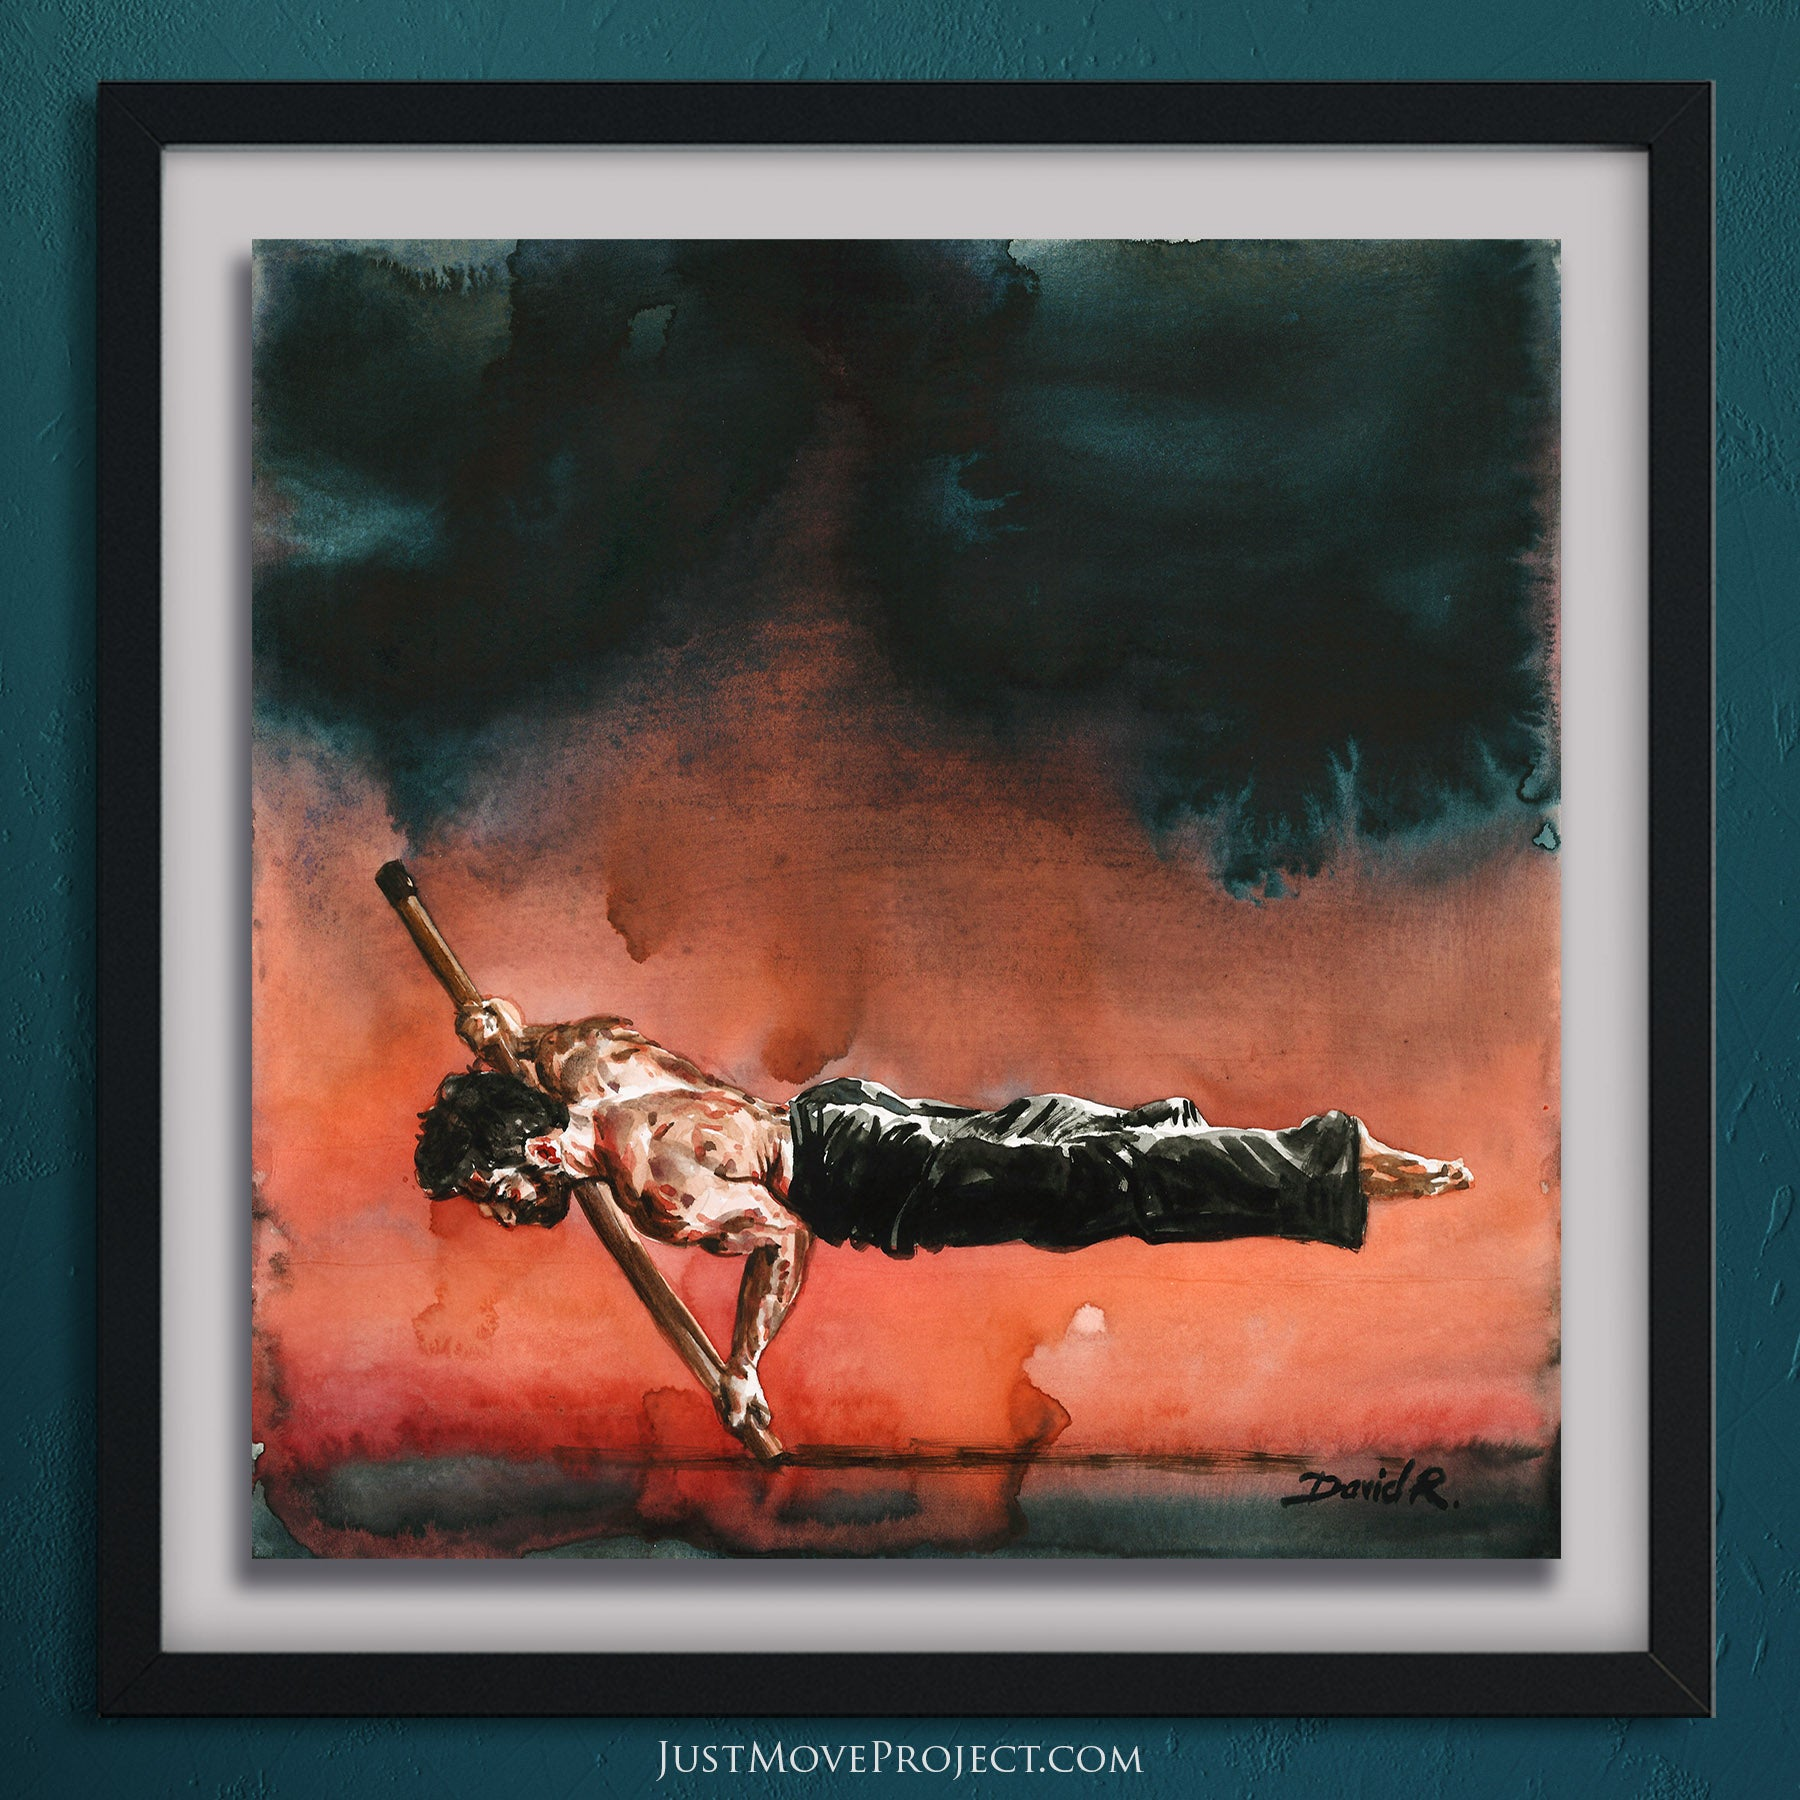 david roman art just move project 2 watercolour watercolor painting vibrant wall art home decor inspired by movement and athletes turquoise teal mauve orange deep blue acrobatic acrobat balance